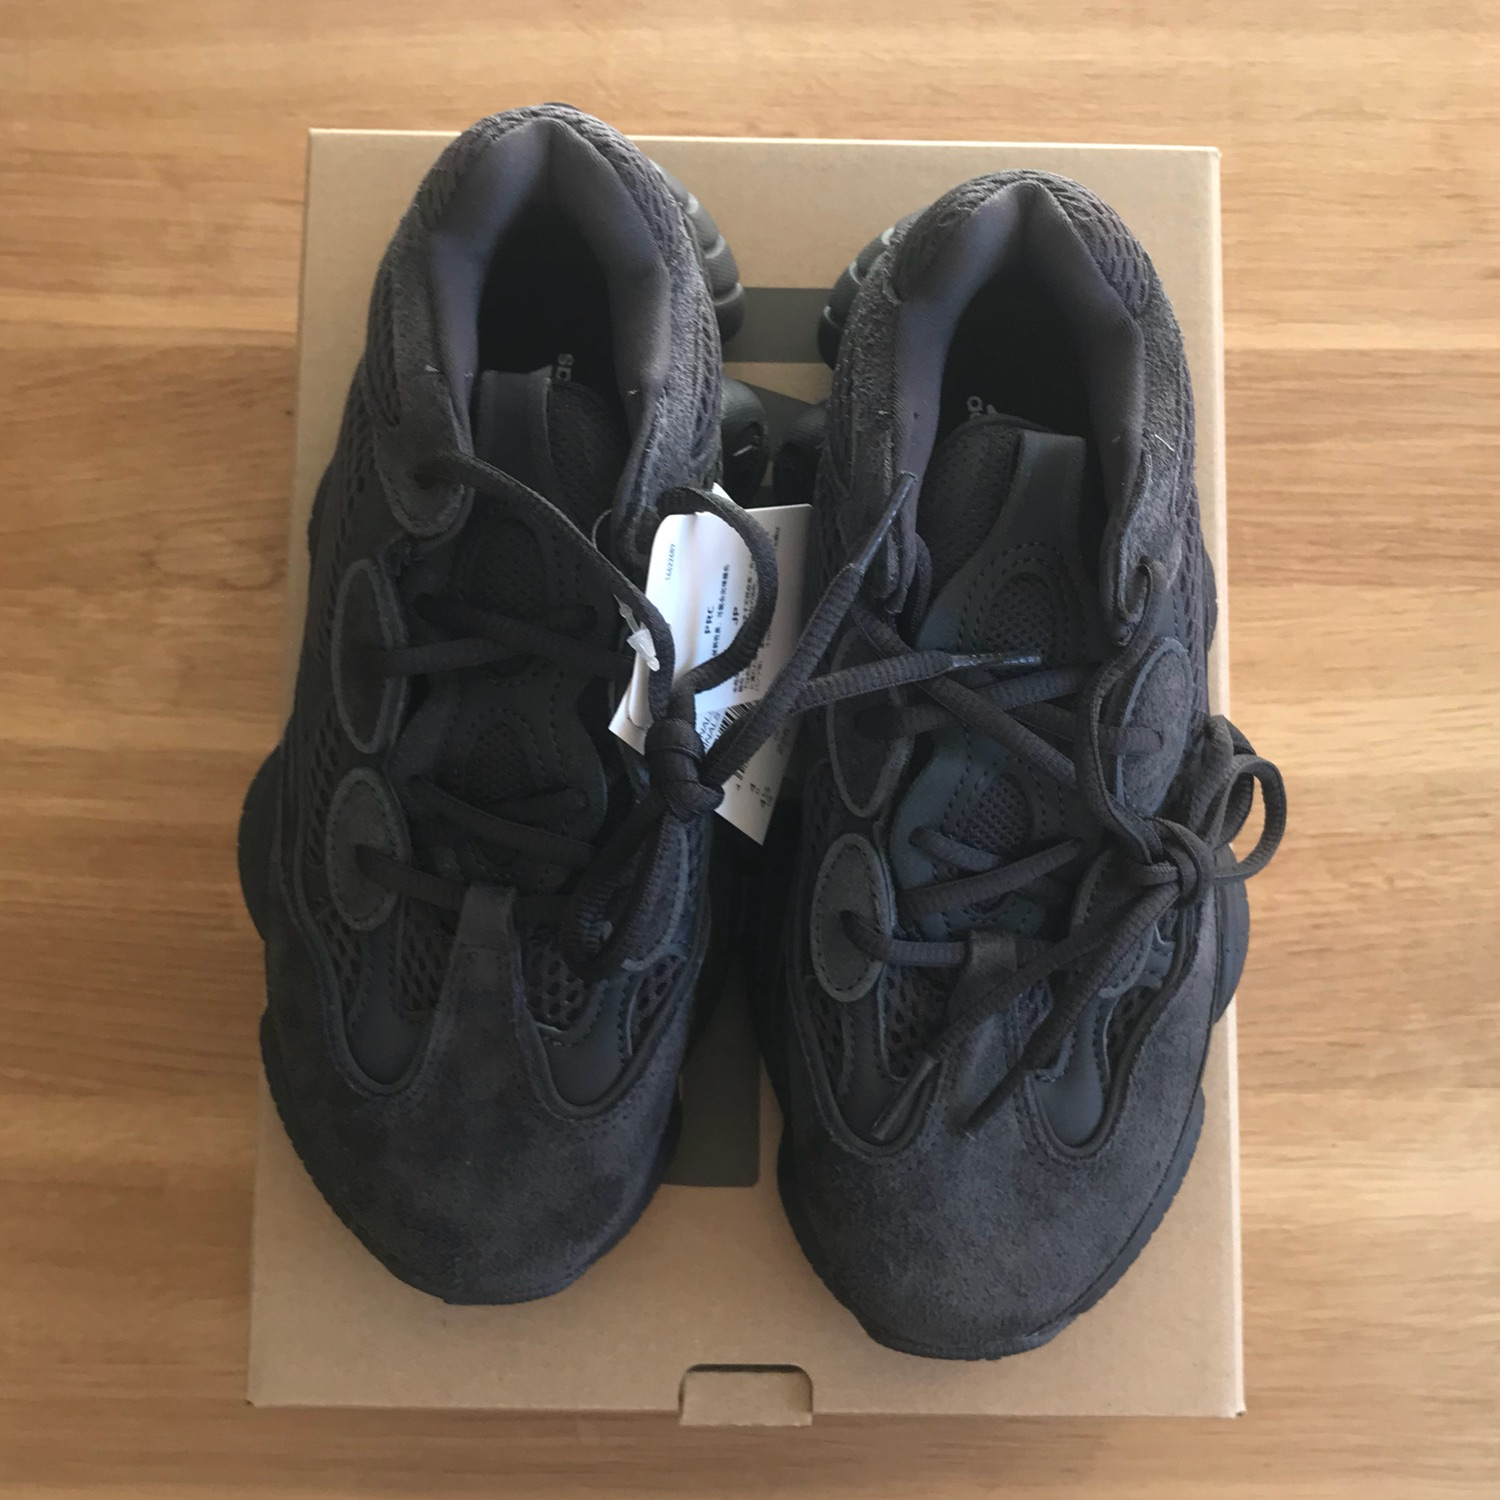 detailed look 2b8a4 c1b5c Adidas Yeezy 500 - Utility Black ( Under Retail )